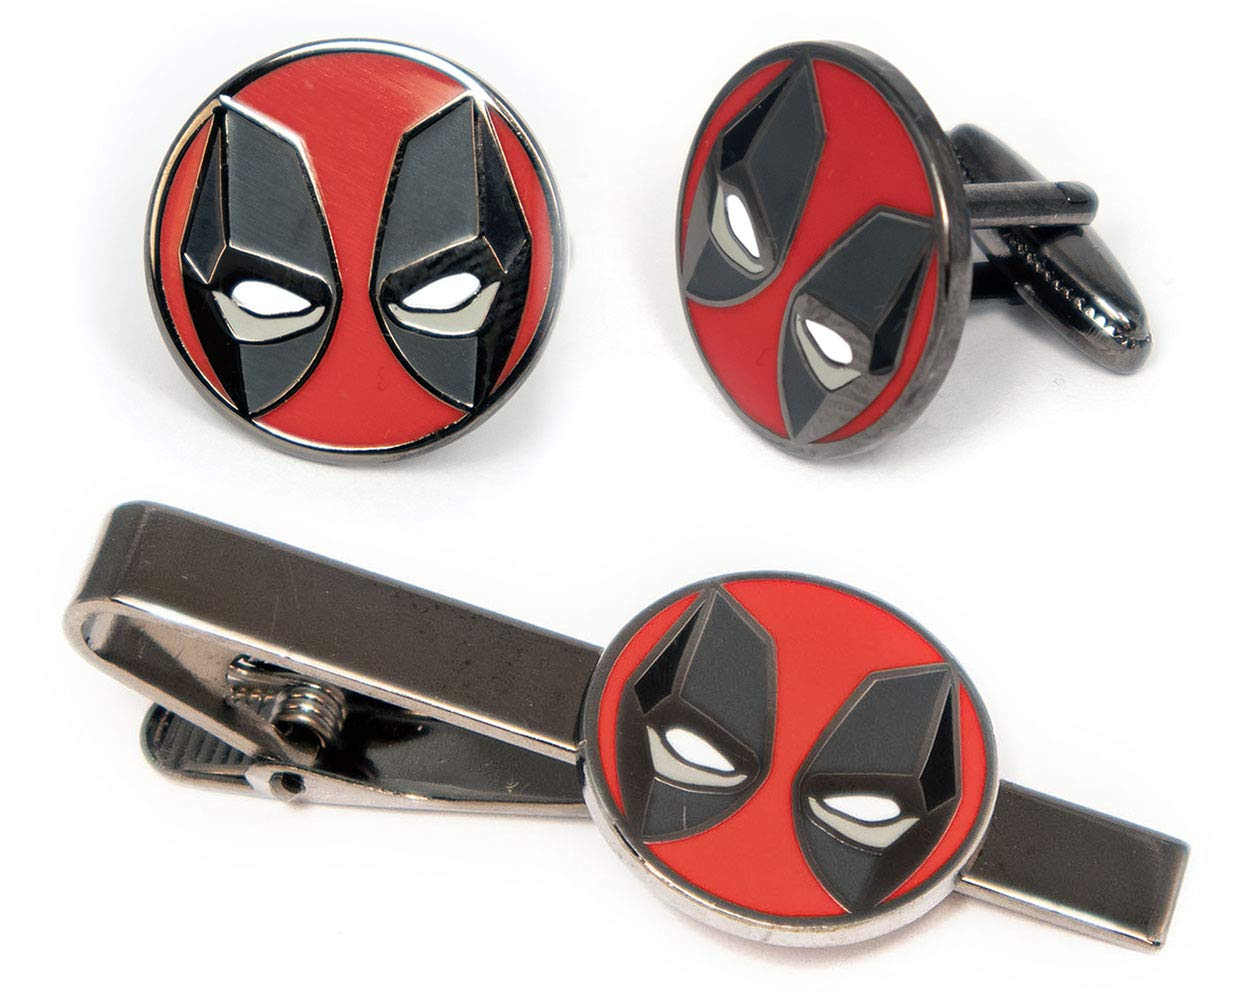 SharedImagination Deadpool Tie Clip, The X-Men Cufflinks, Marvel Minimalist Jewelry, Wolverine Cuff Links Link, Cable Tie Tack Groomsmen Wedding Party Gift